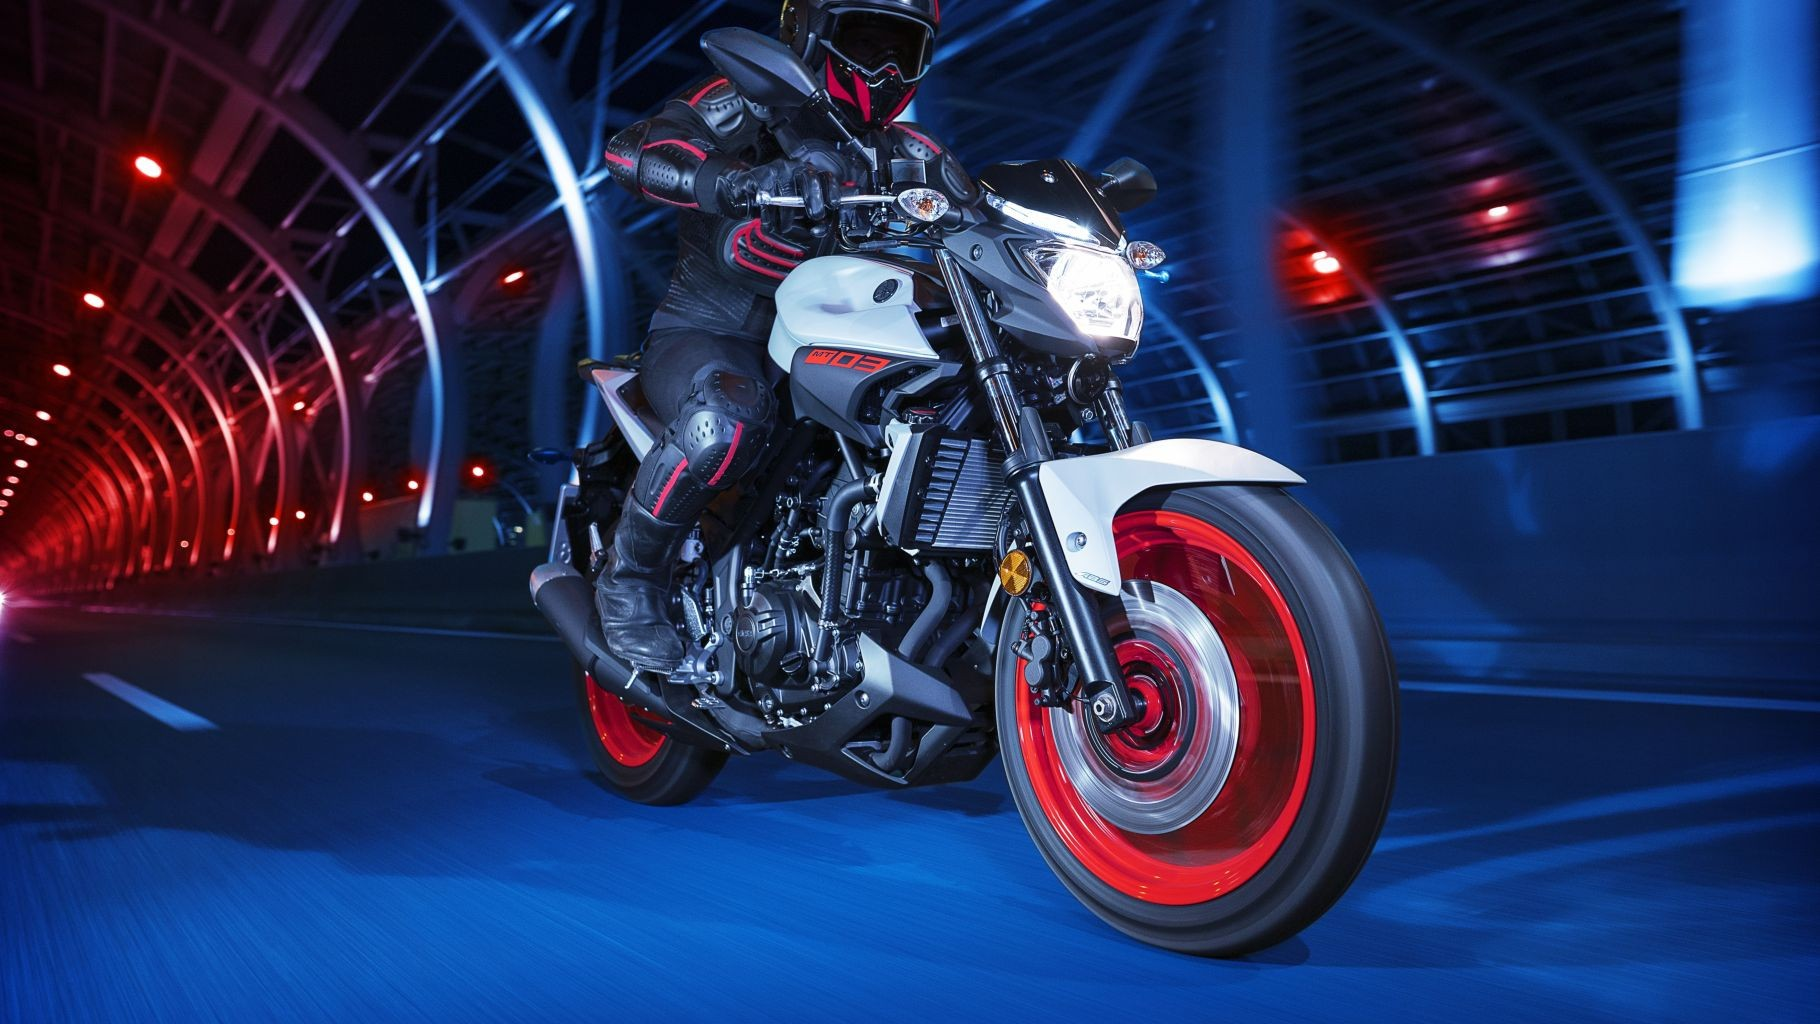 2018-yamaha-mt-03-eu-night-fluo-static-09_5bzQ